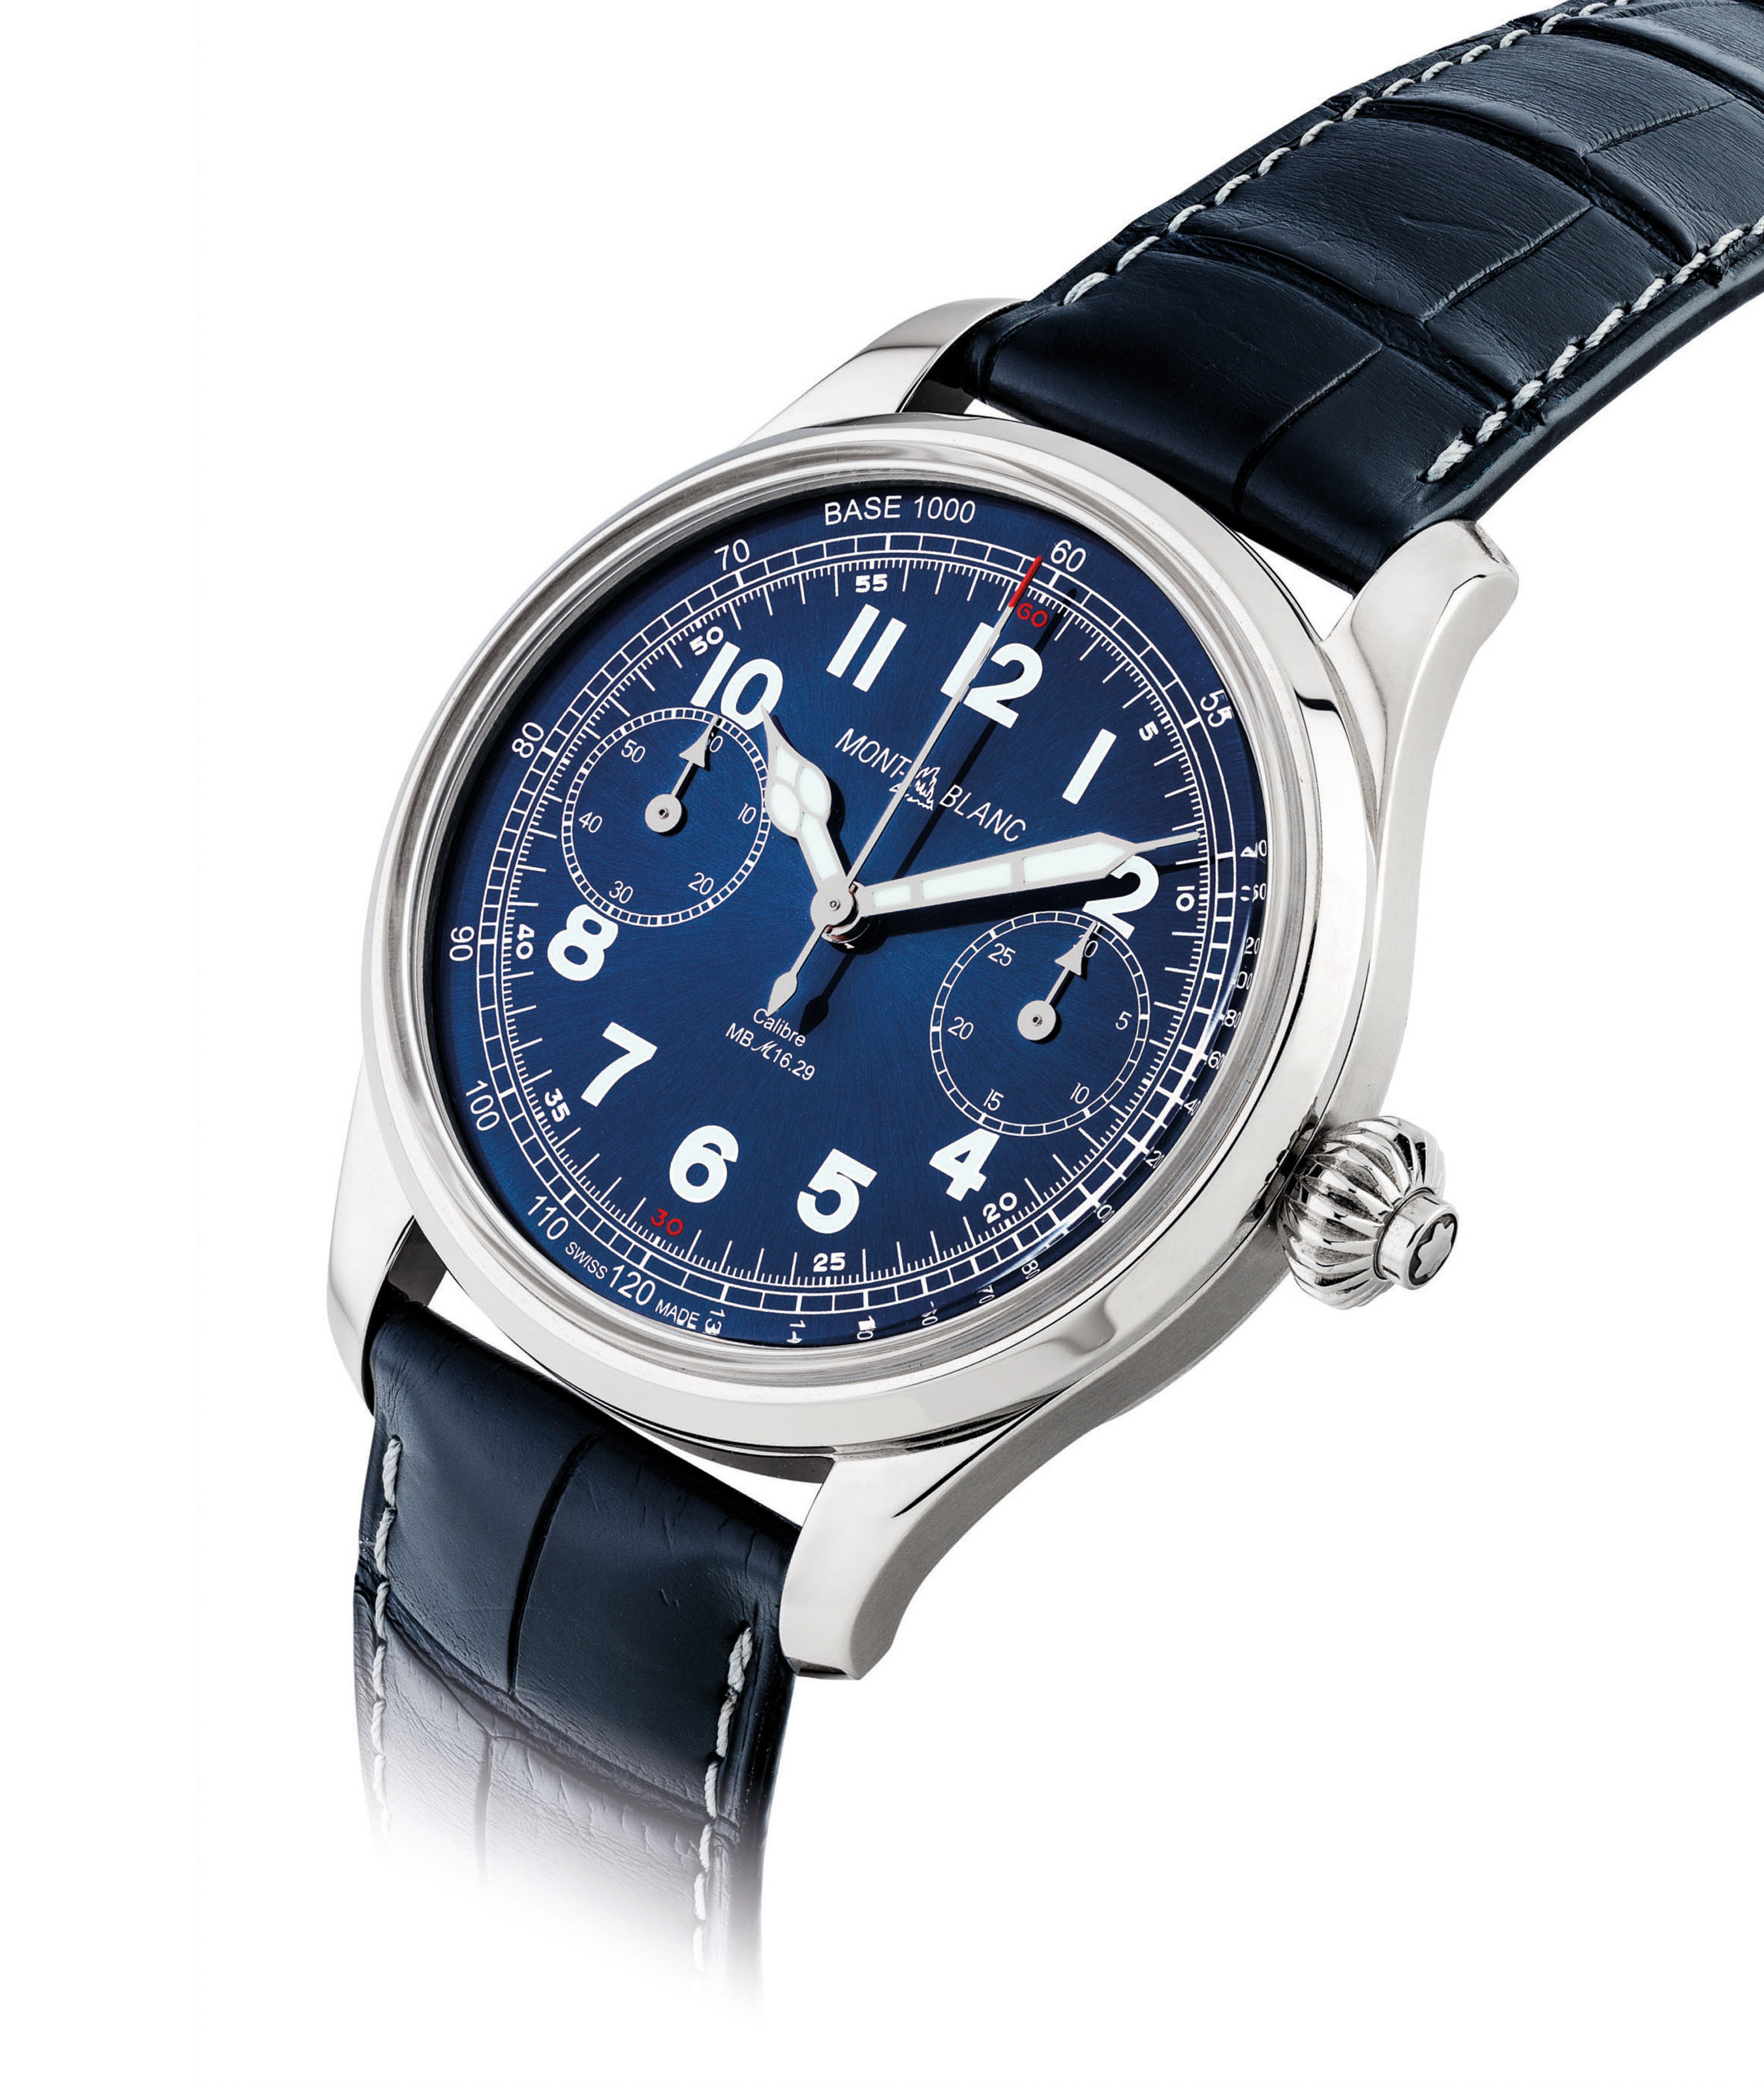 MONTBLANC. A FINE AND VERY RARE STAINLESS STEEL LIMITED EDITION SINGLE-BUTTON CHRONOGRAPH WRISTWATCH